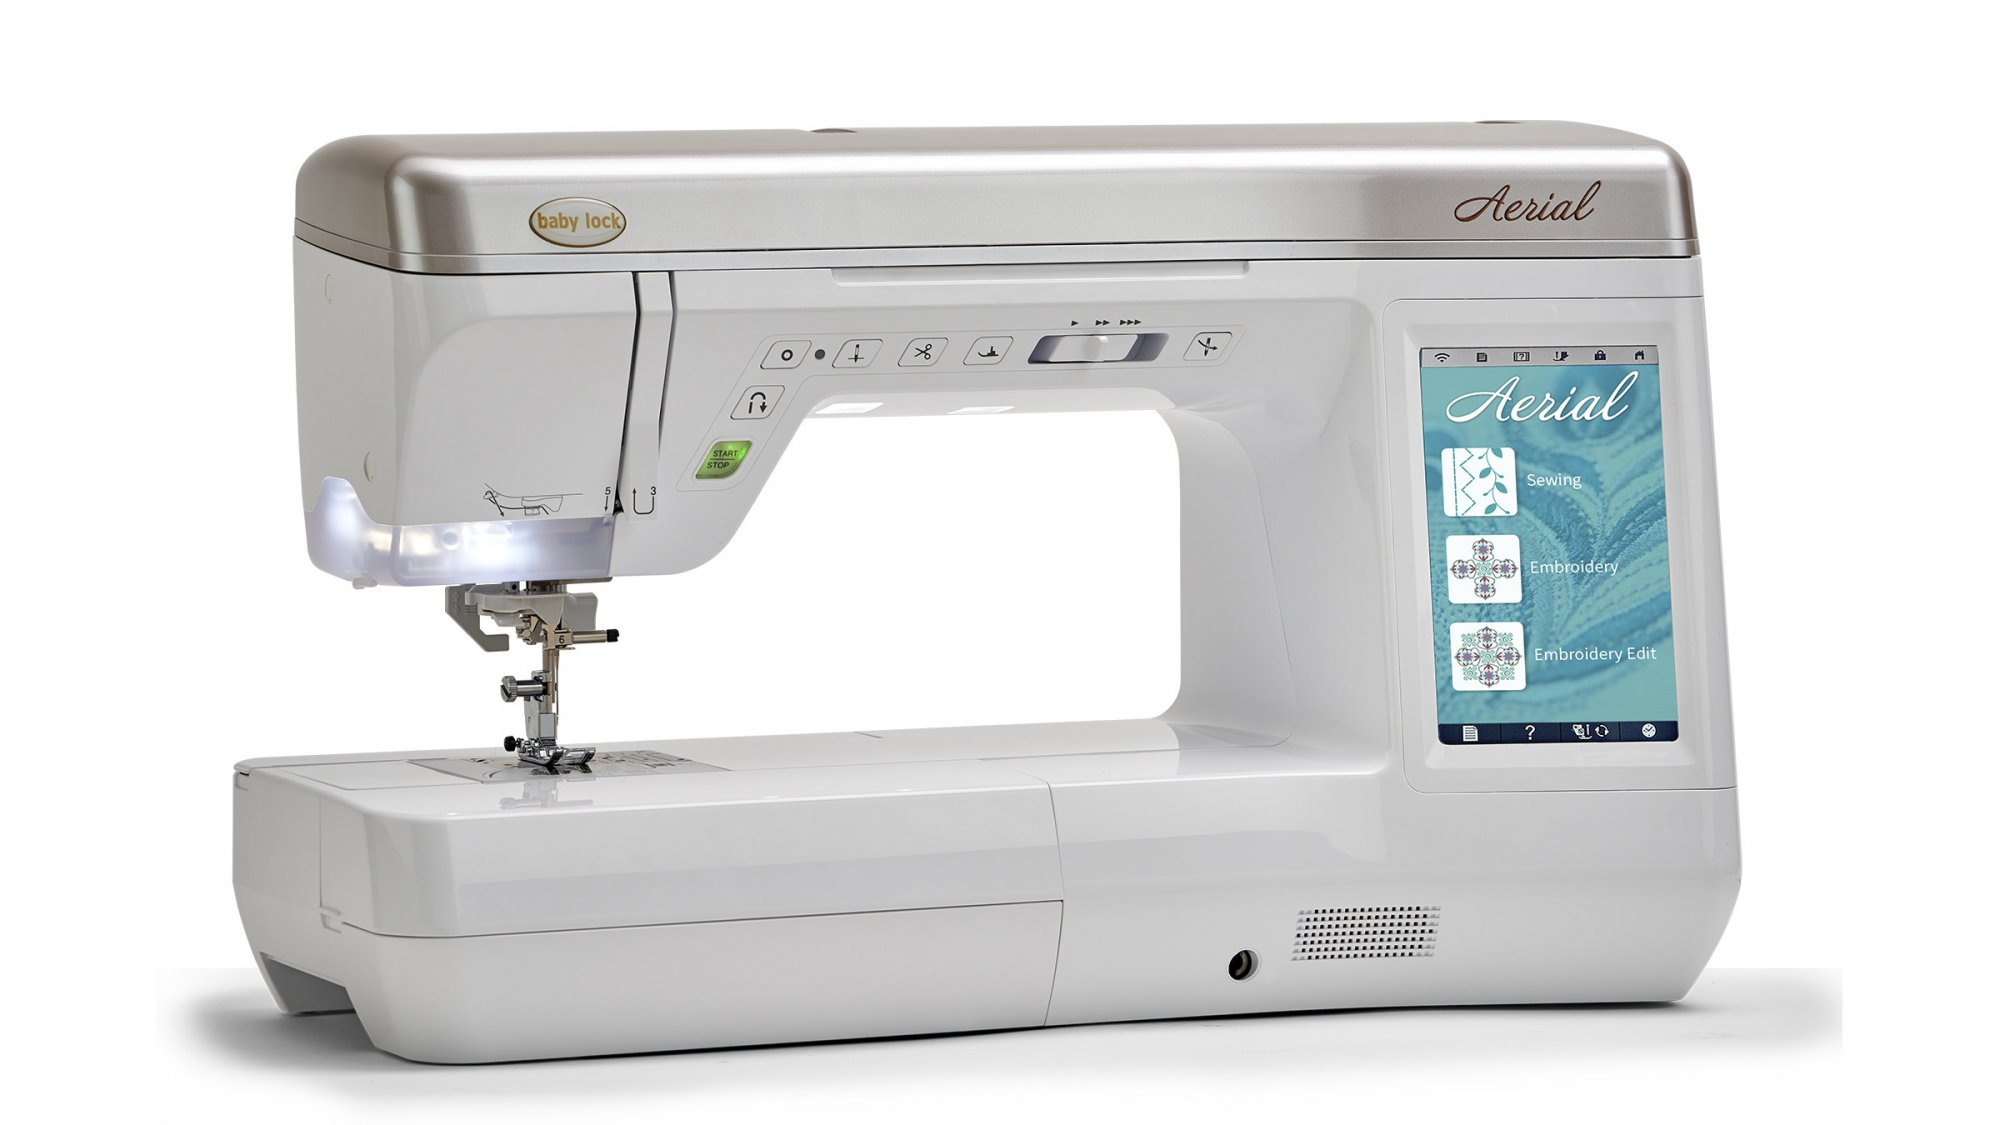 Babylock Aerial Sewing/Embroidery Machine